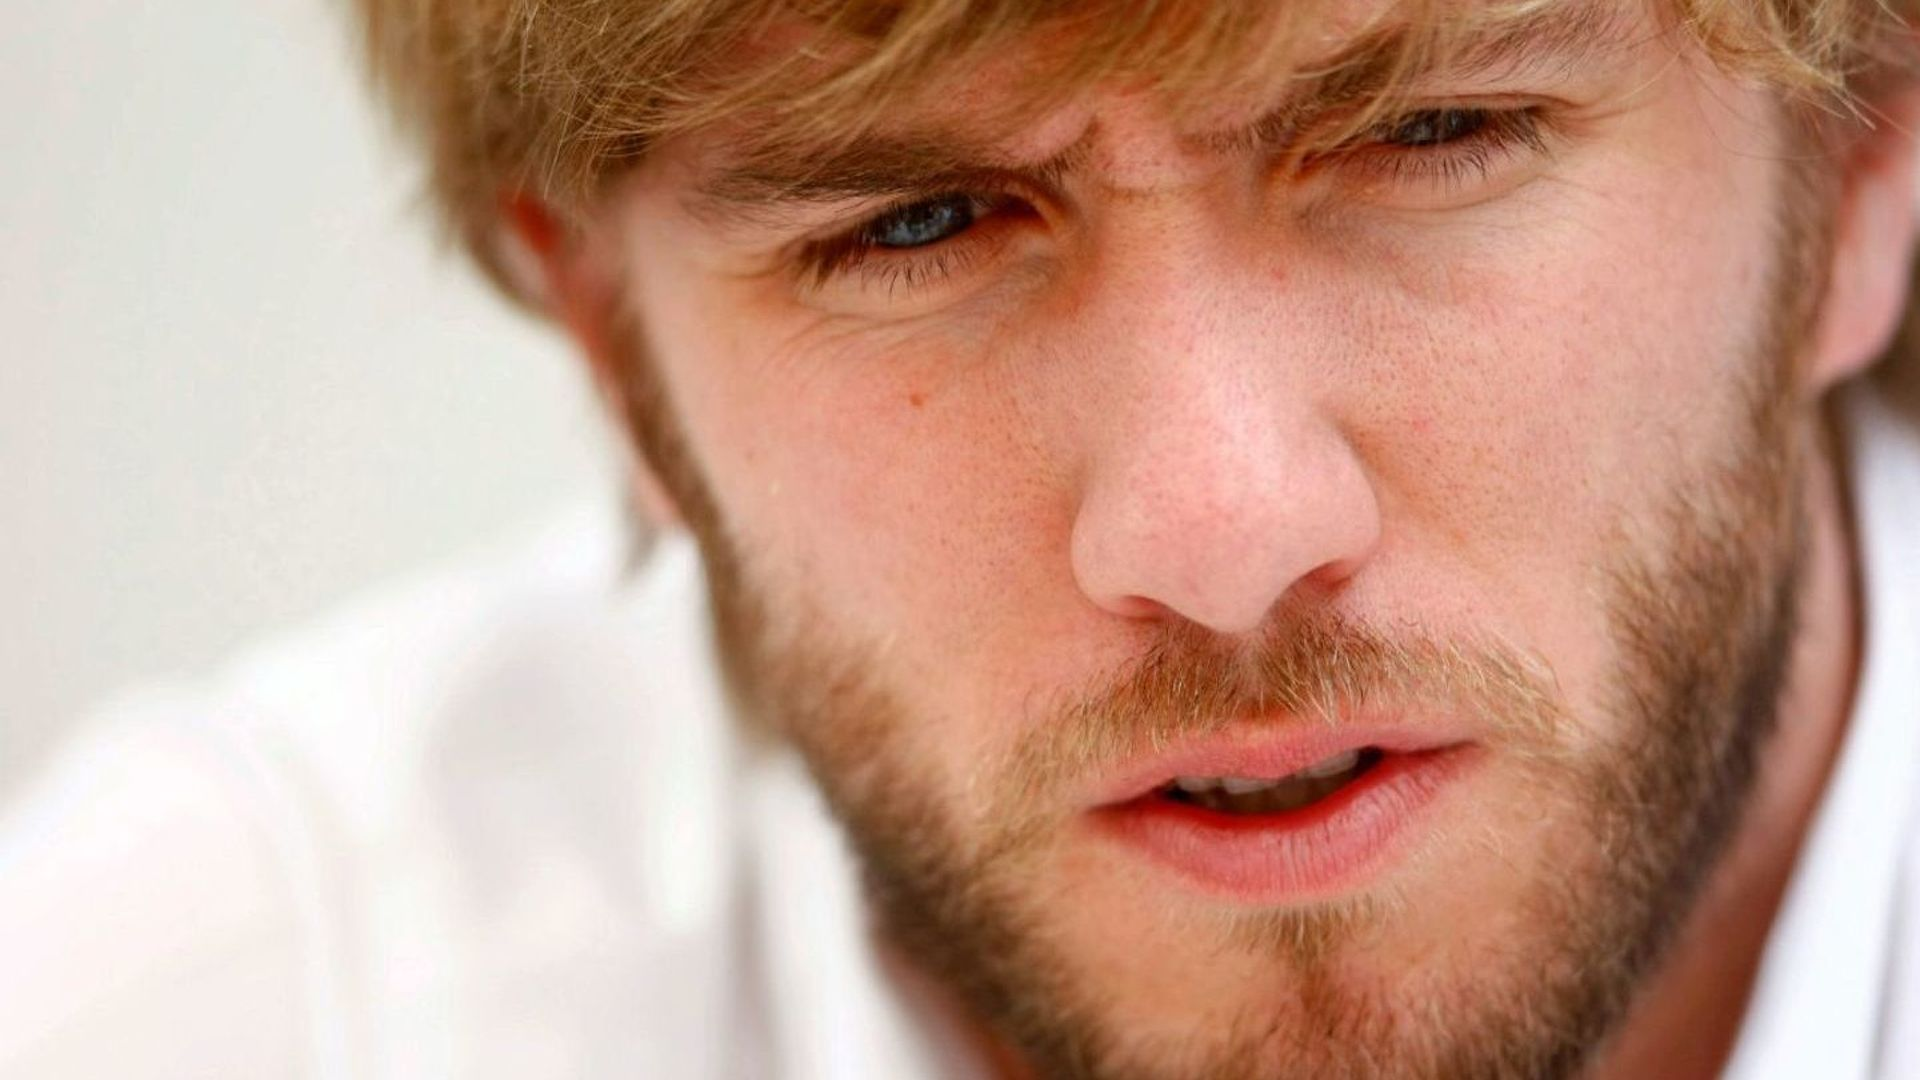 Mercedes may not replace Heidfeld as reserve driver